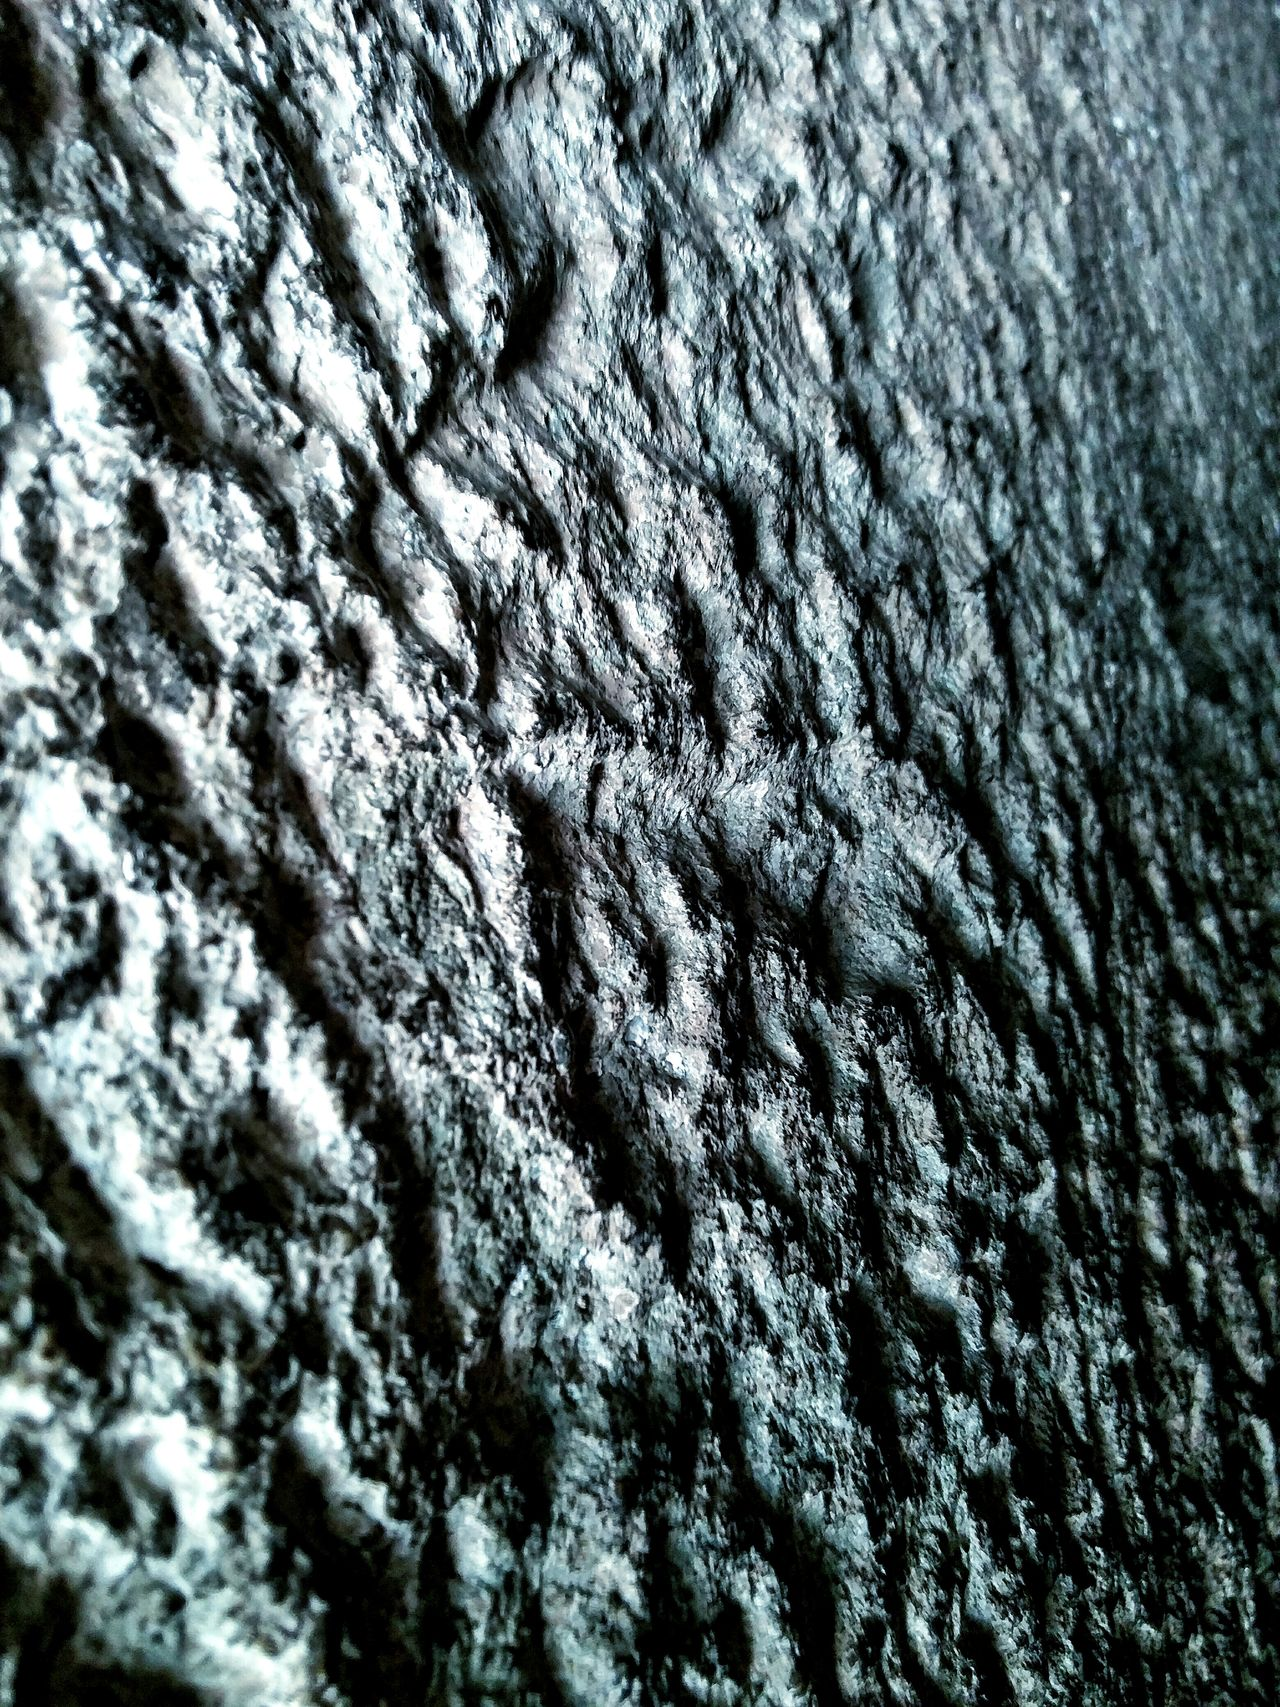 Wall - Building Feature Wall Historical Place Fort Fortress Wall EyeEm Gallery Snapseed Abstract Photography Mobilephotography Surreal Mystery Oneplus2 No People Day Eyeemedit EyeEmBestEdits Close-up Illuminated India Built Structure Lava Texture Stone Wall Stone Structure